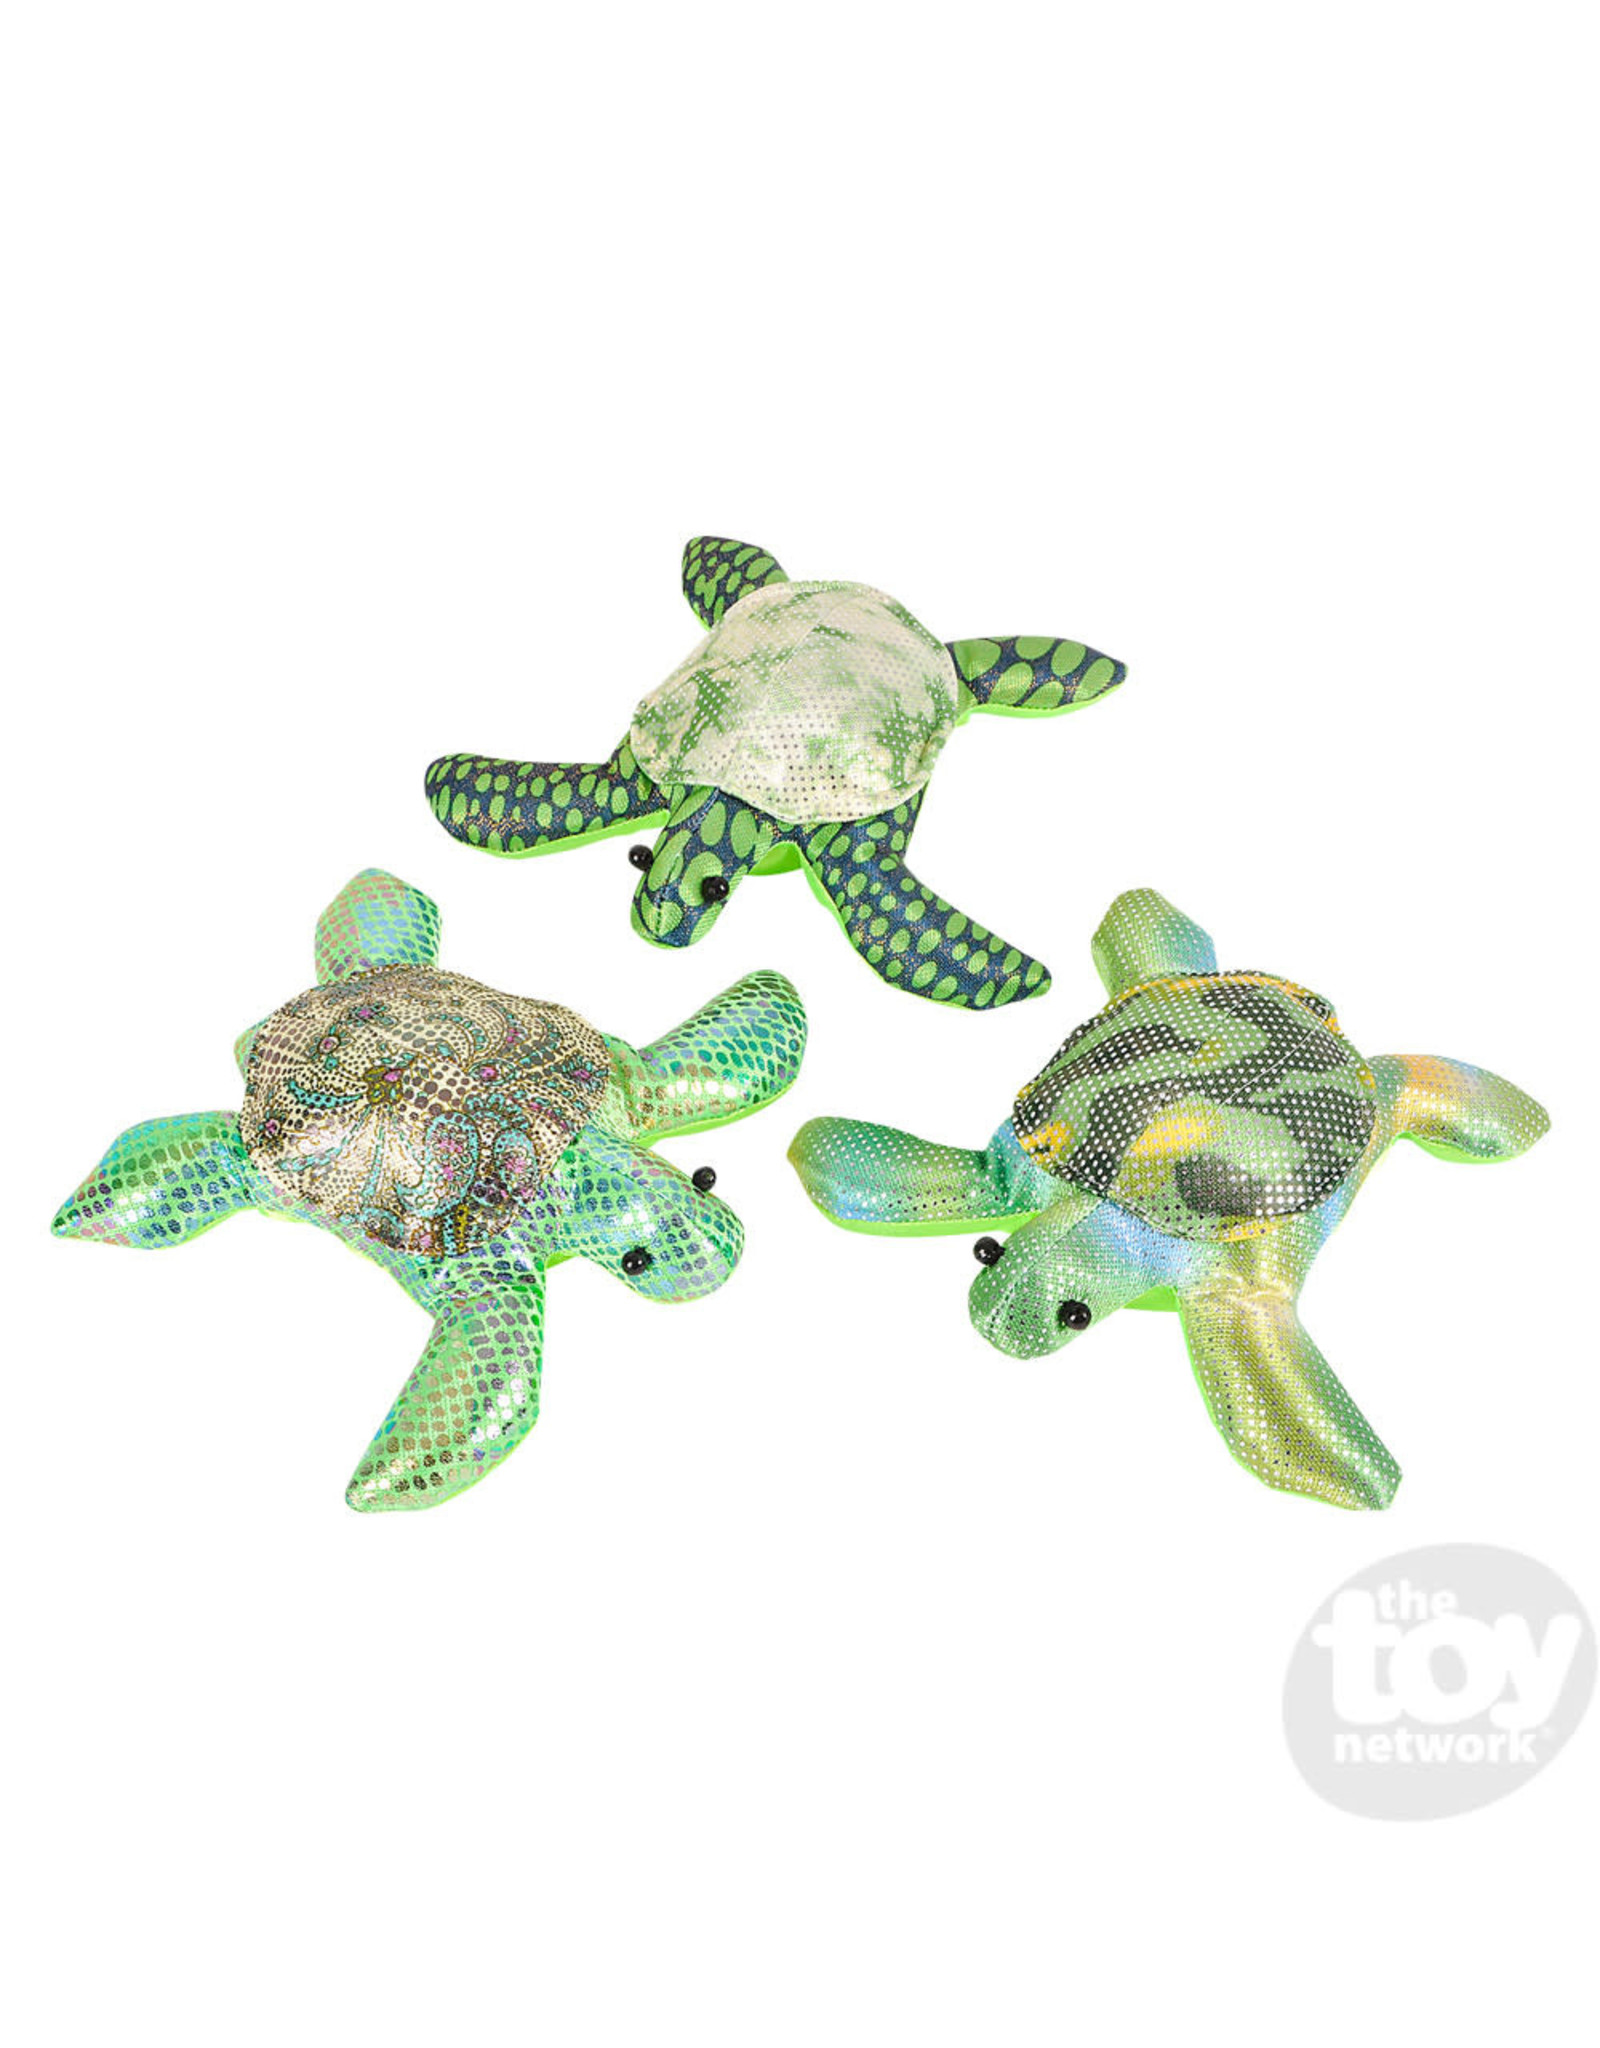 The Toy Network Turtle Sandbag 5""